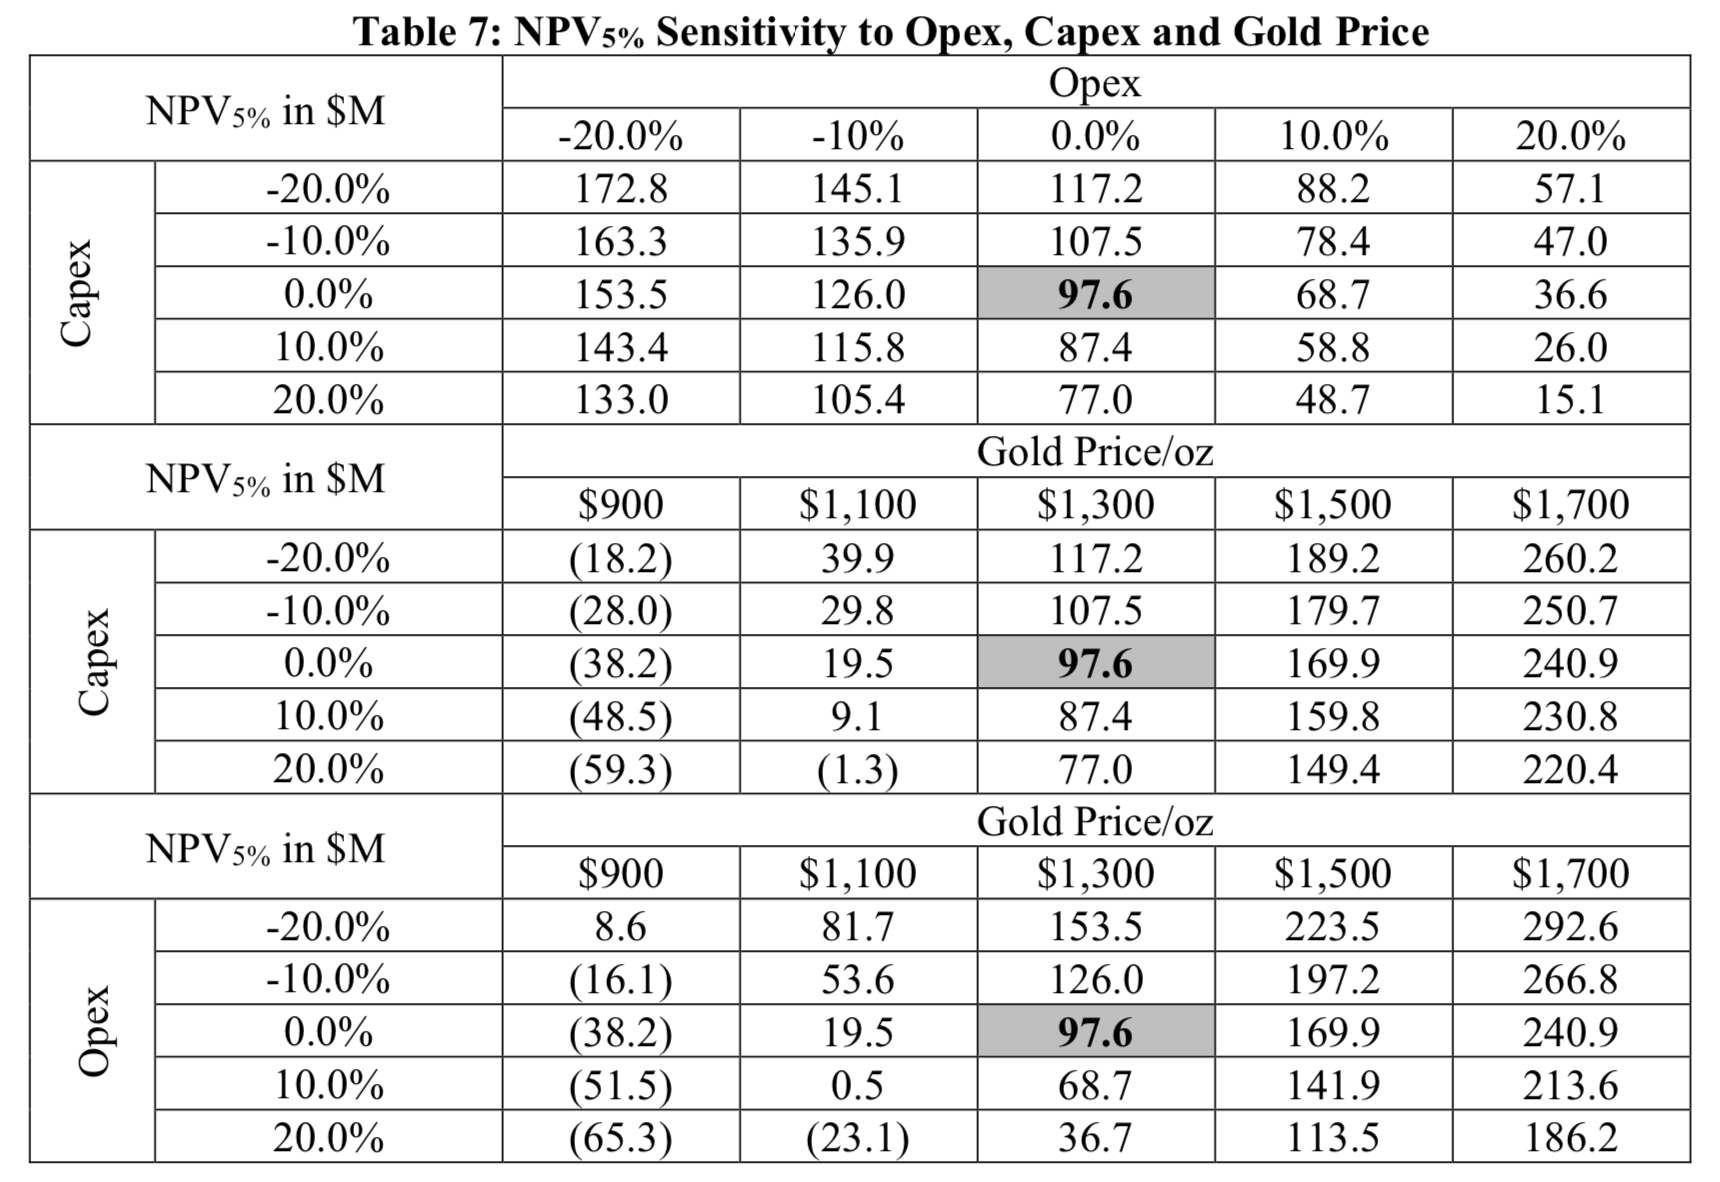 Table 7: NPV Senstivity to Opex, Capex and Gold Price